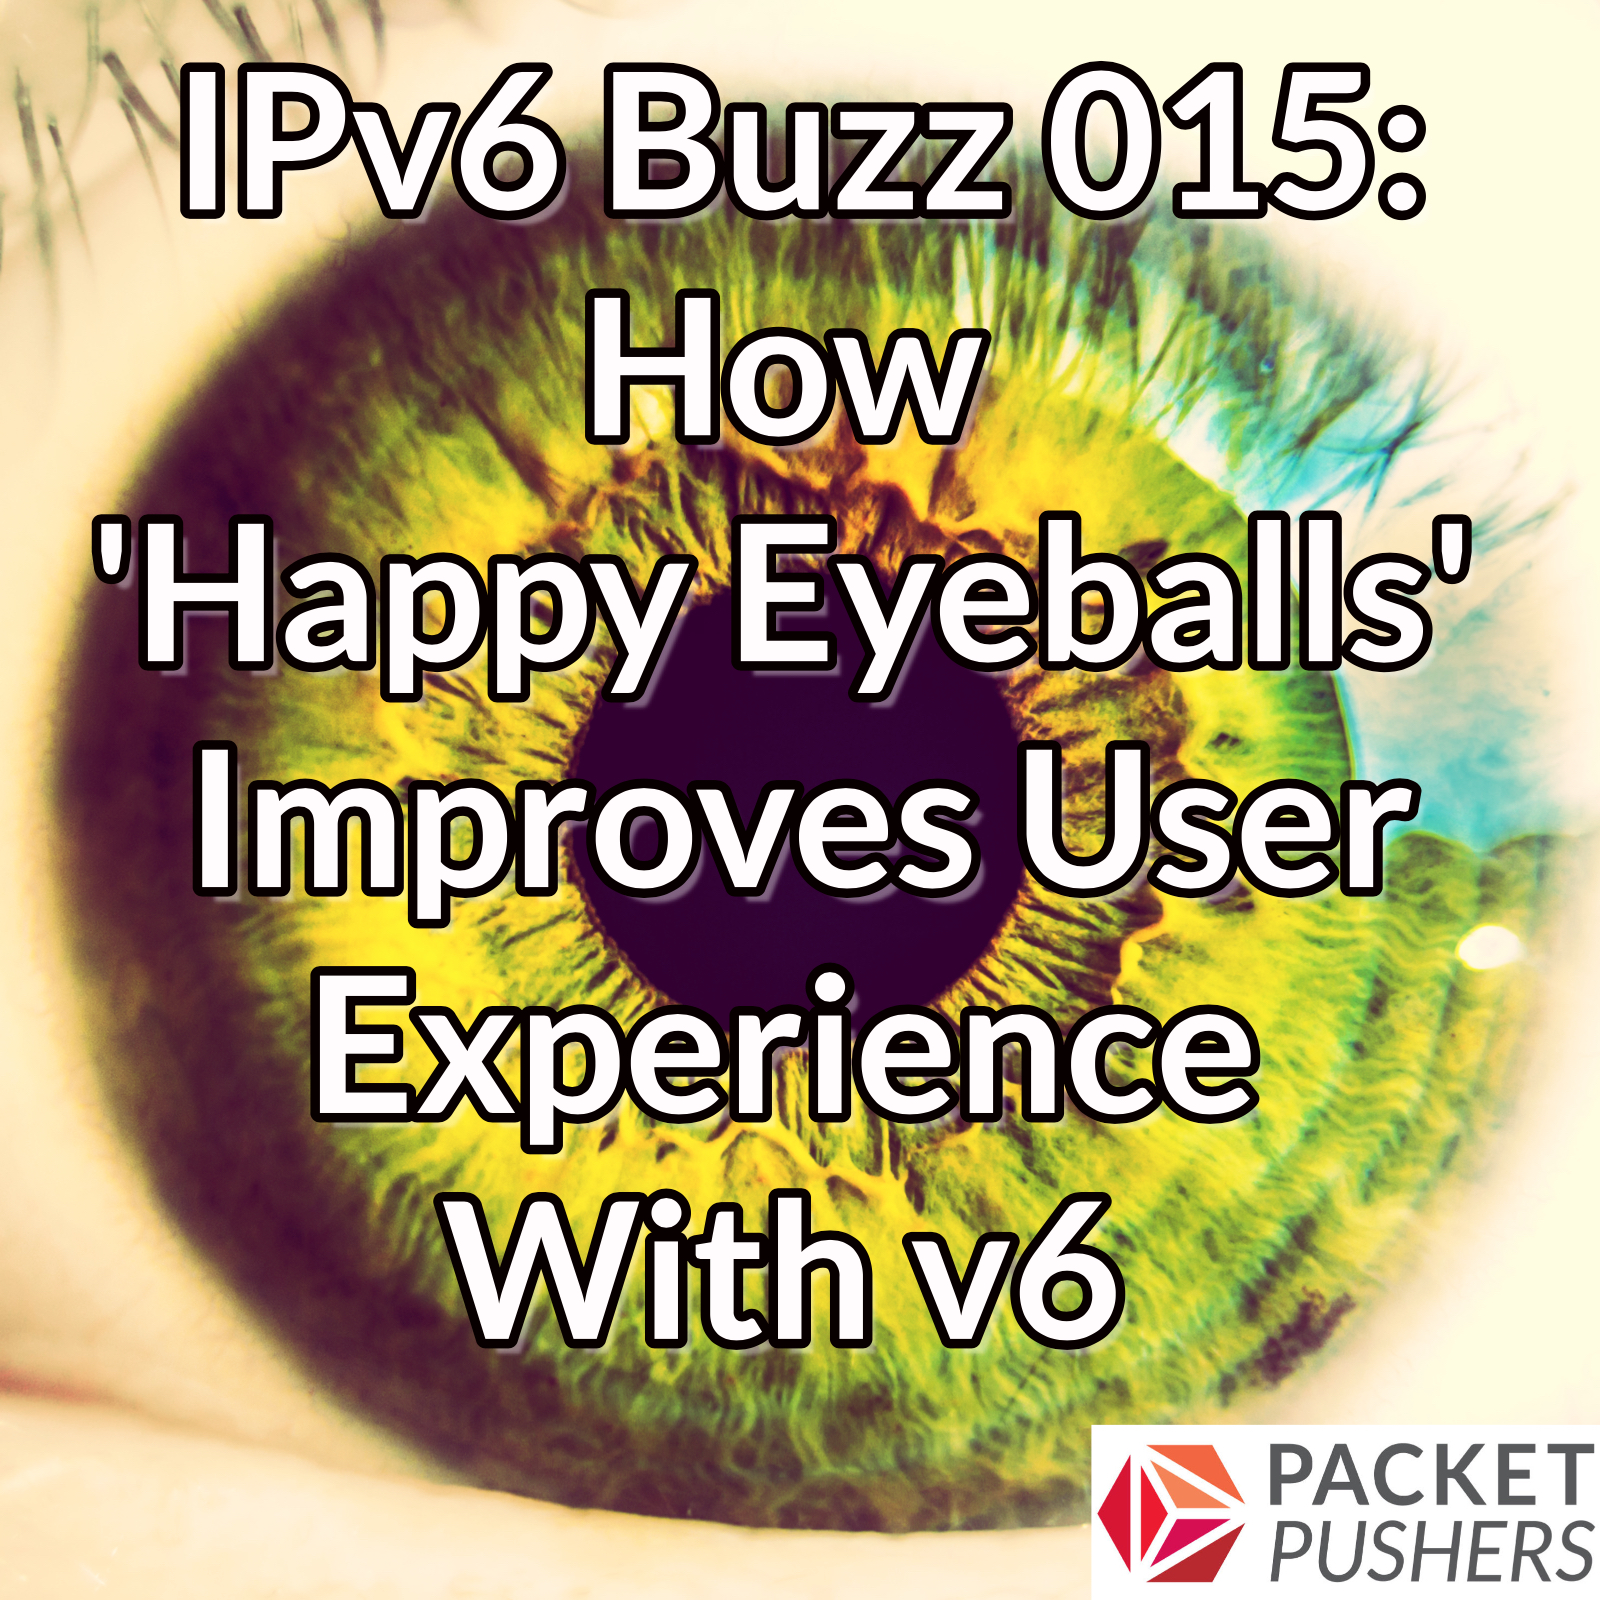 Happy Eyeballs Improve User Experience with v6